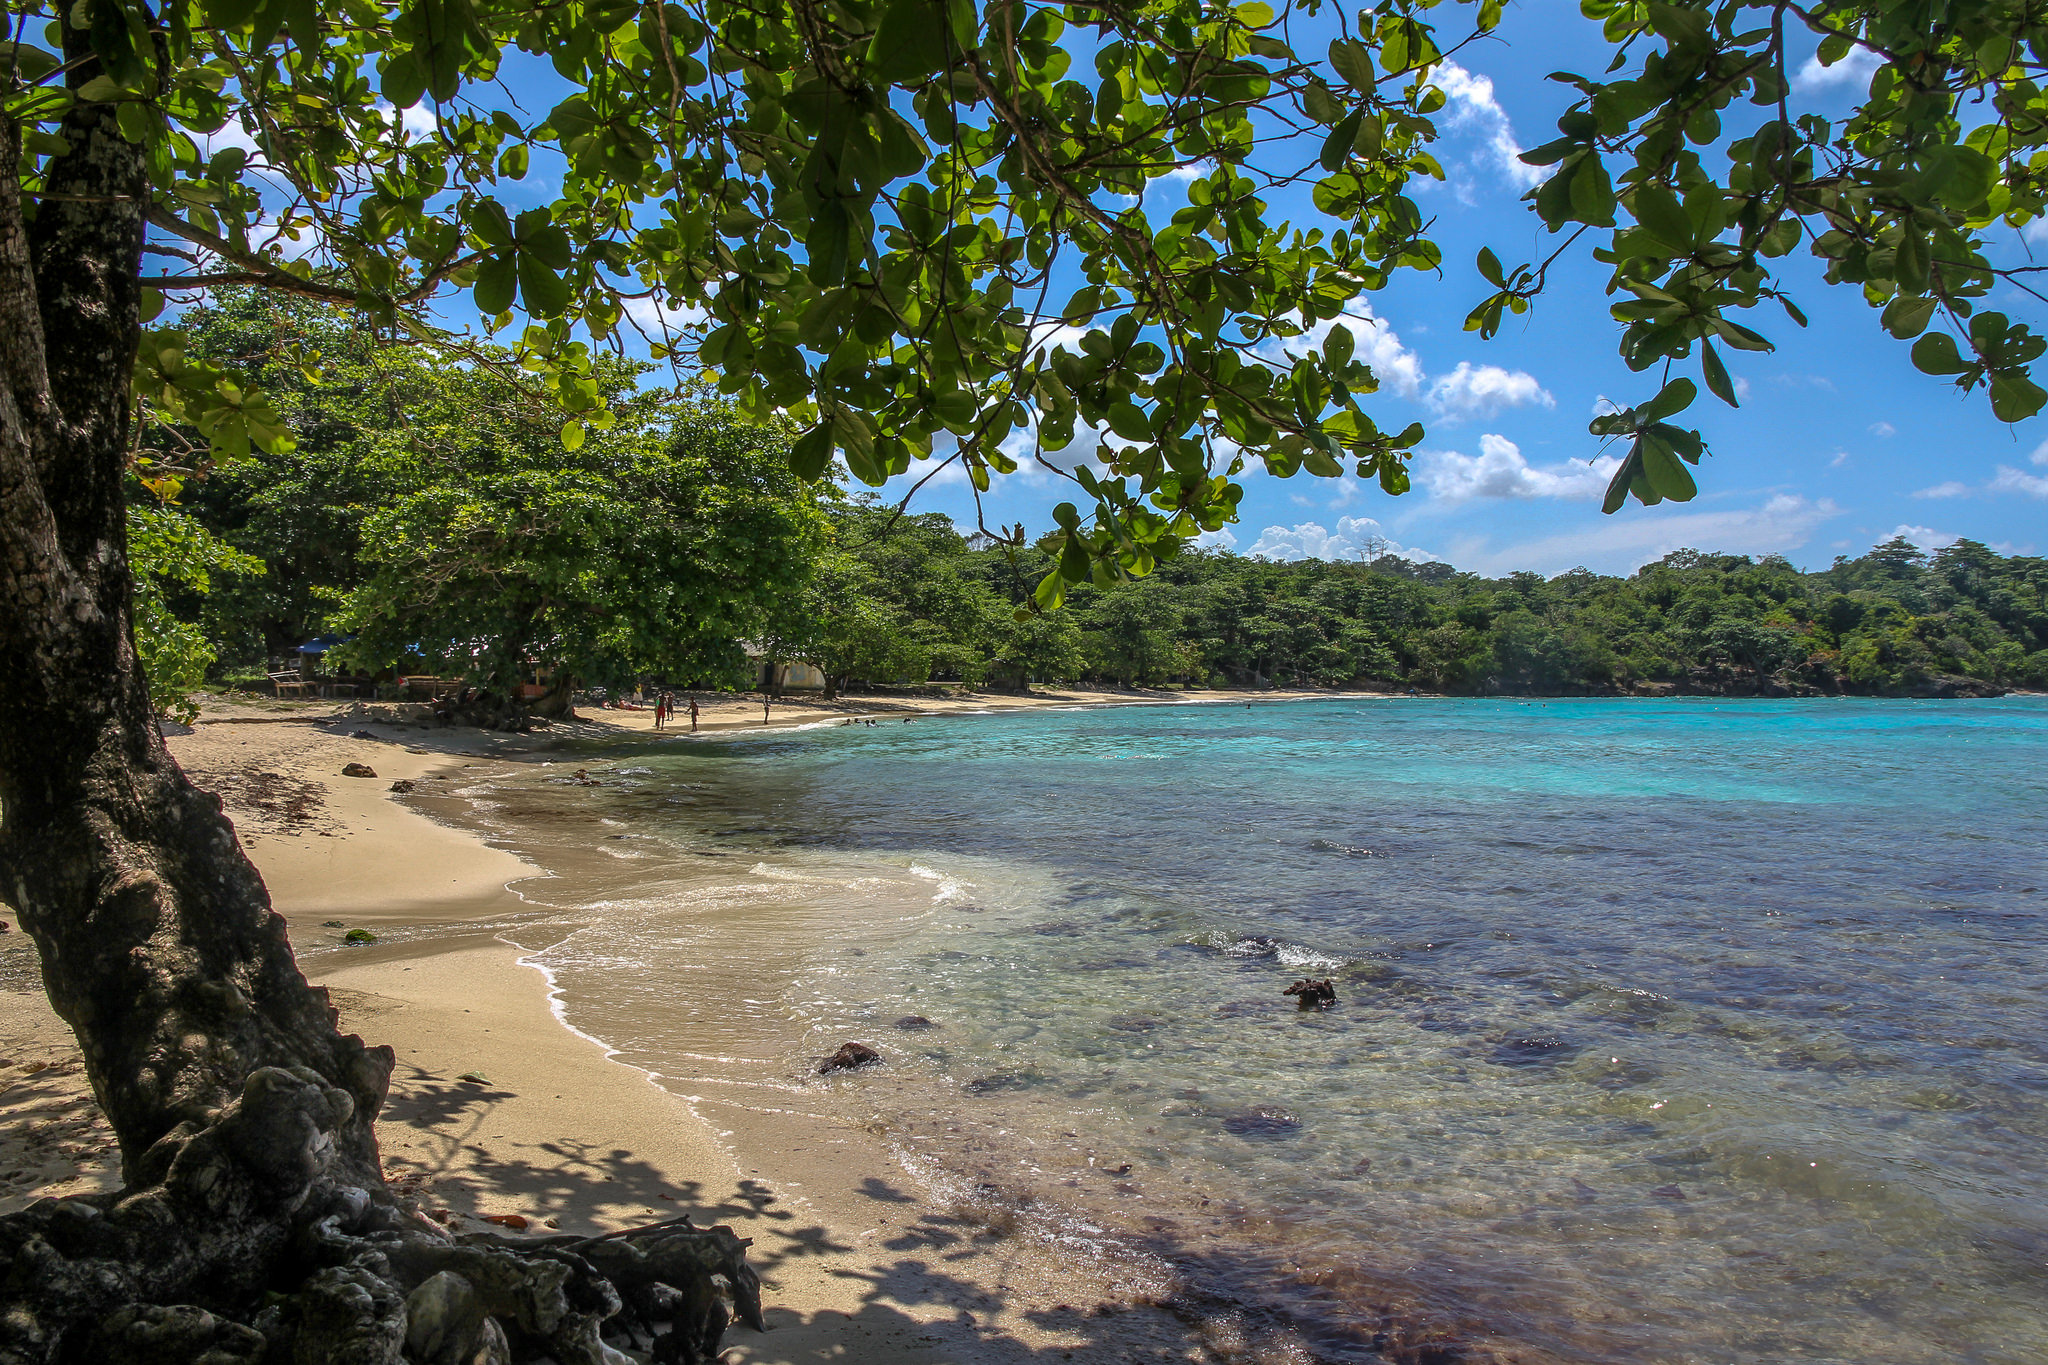 Winnifred Beach - Jamaica | Por Stéphane Damour para Flickr (Creative Commons)